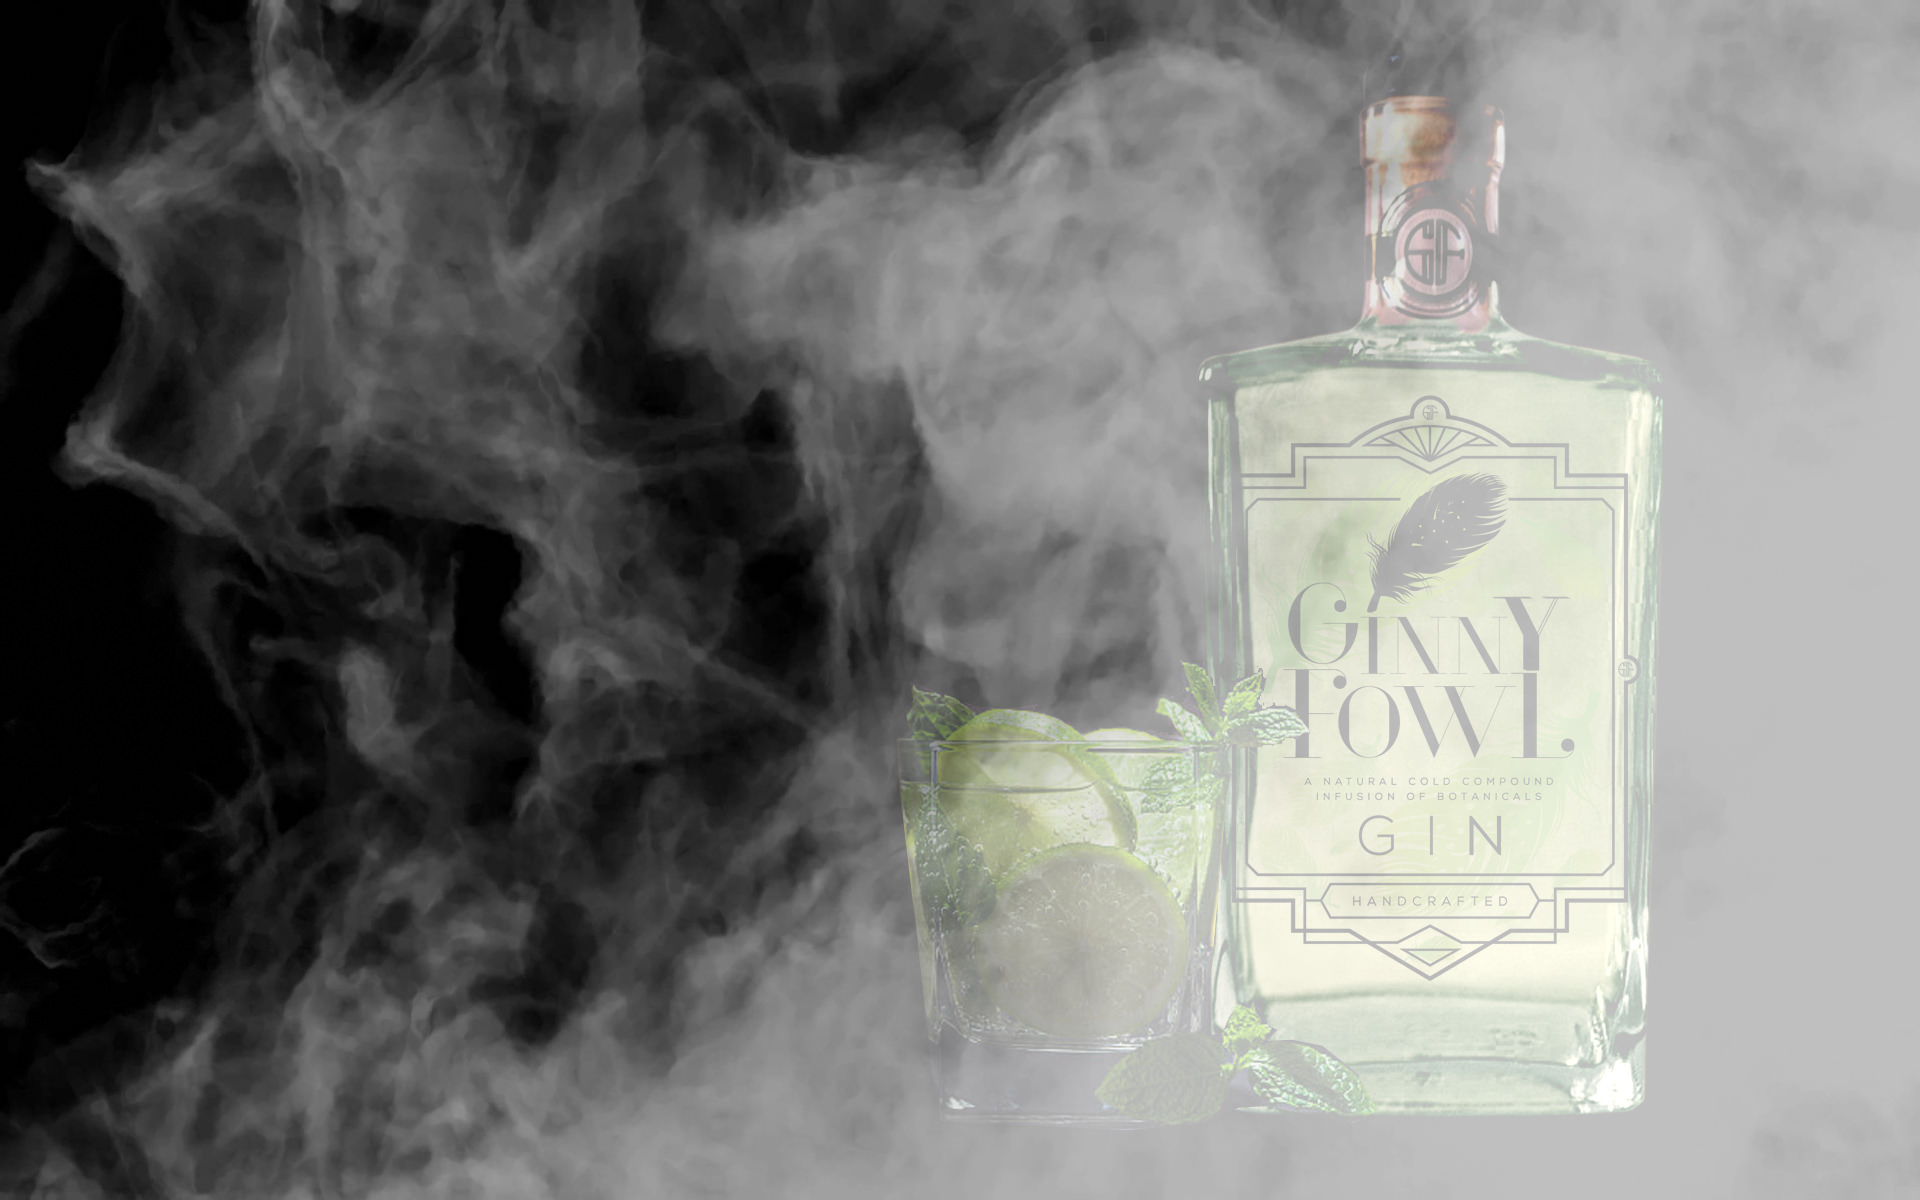 Ginny Fowl Lemongrass and Lime Gin